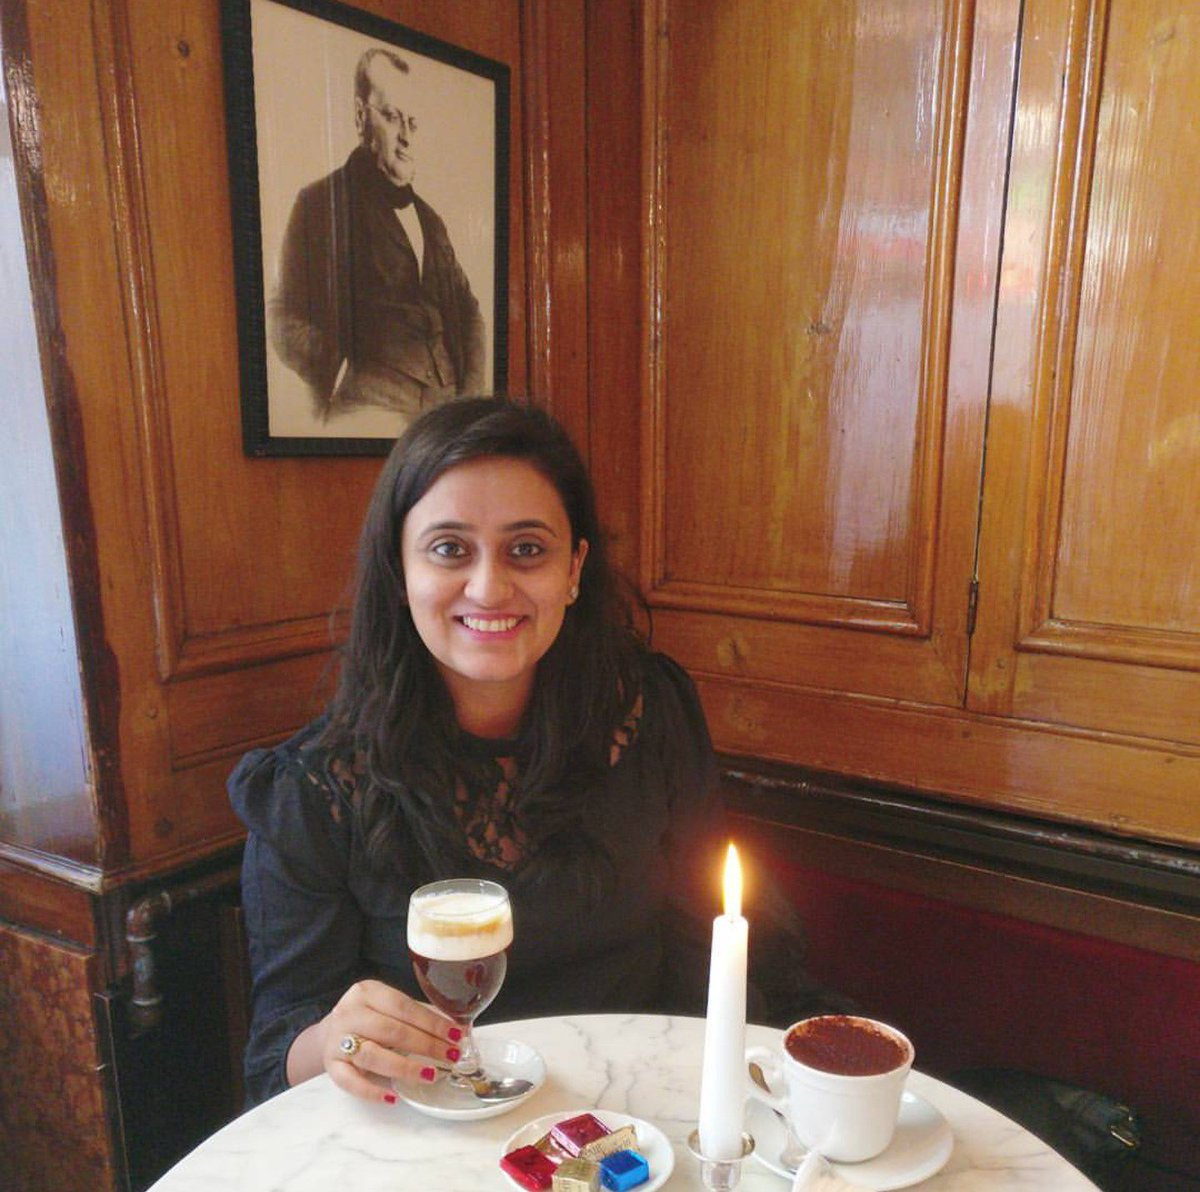 #italophilia&#39;s #love letter to #Turin and why you will love it too   http://www. turinepi.com/2017/11/ishita s-love-letter-to-turin.html &nbsp; …  #italy #vidaroyal #travel #food #wine #art #architecture #shopping #martini <br>http://pic.twitter.com/iSYY77M4Mu